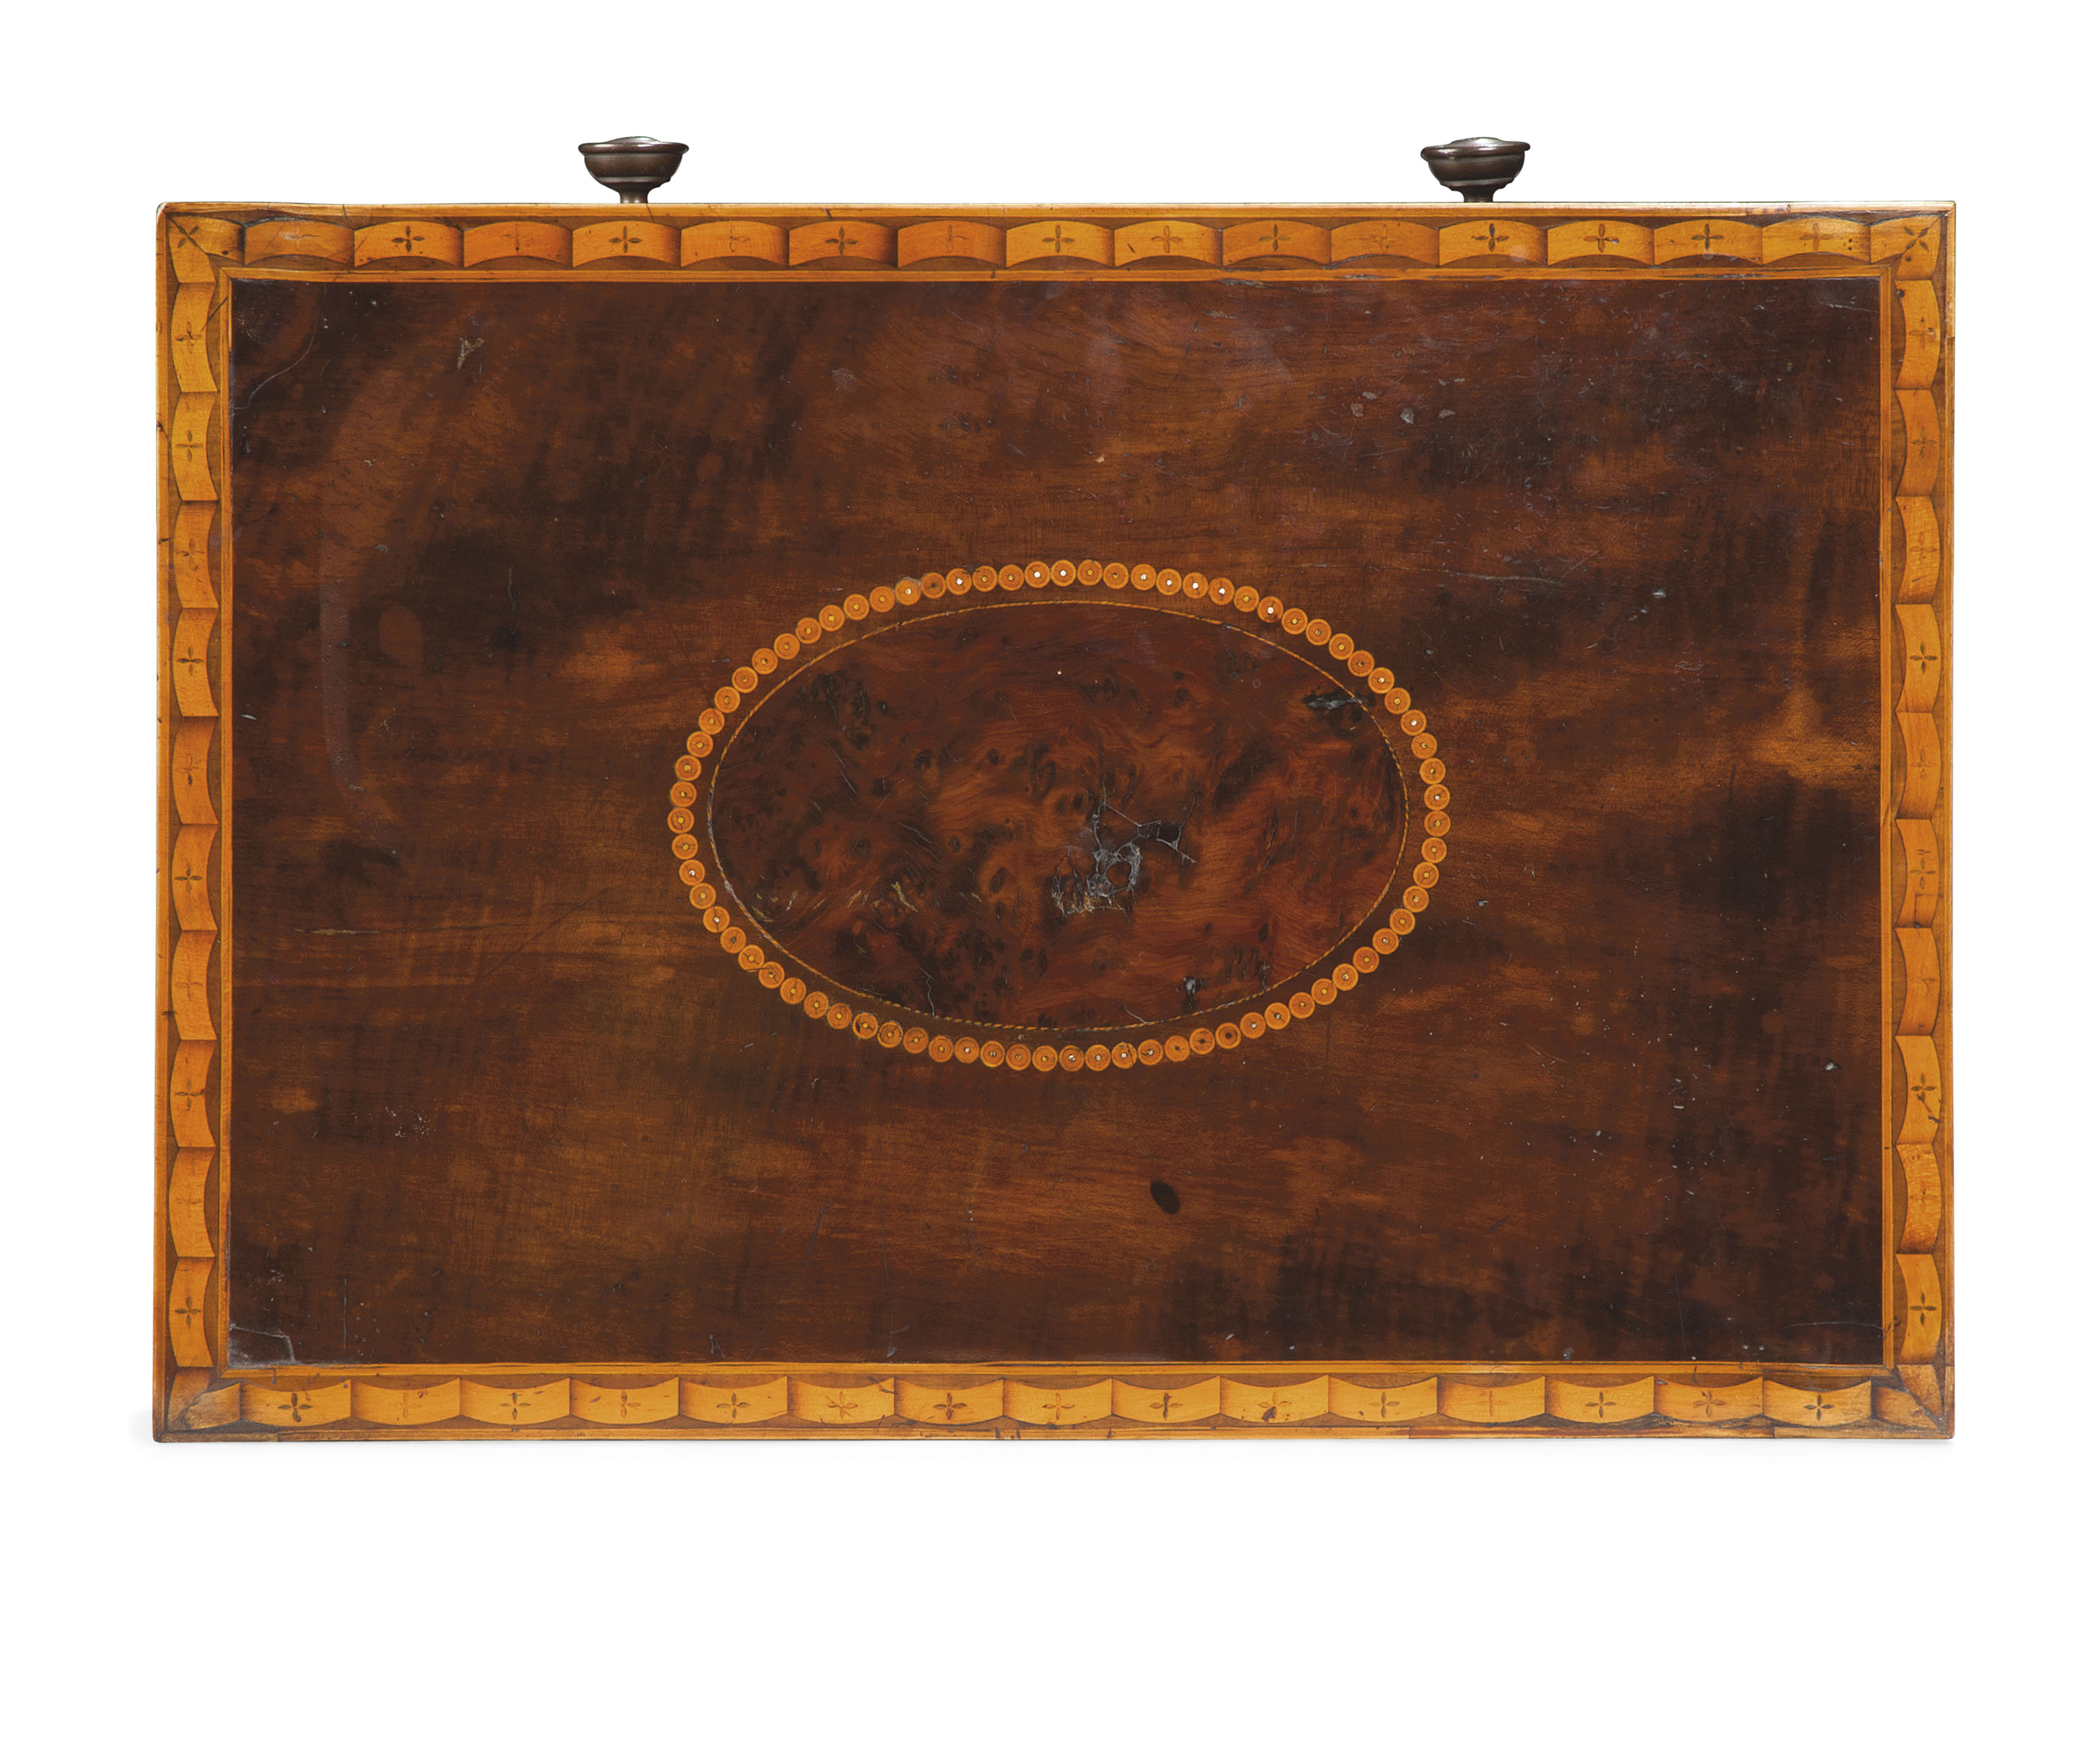 A GEORGE III HAREWOOD, LACEWOOD, BURR YEW AND MARQUETRY OCCASIONAL TABLE